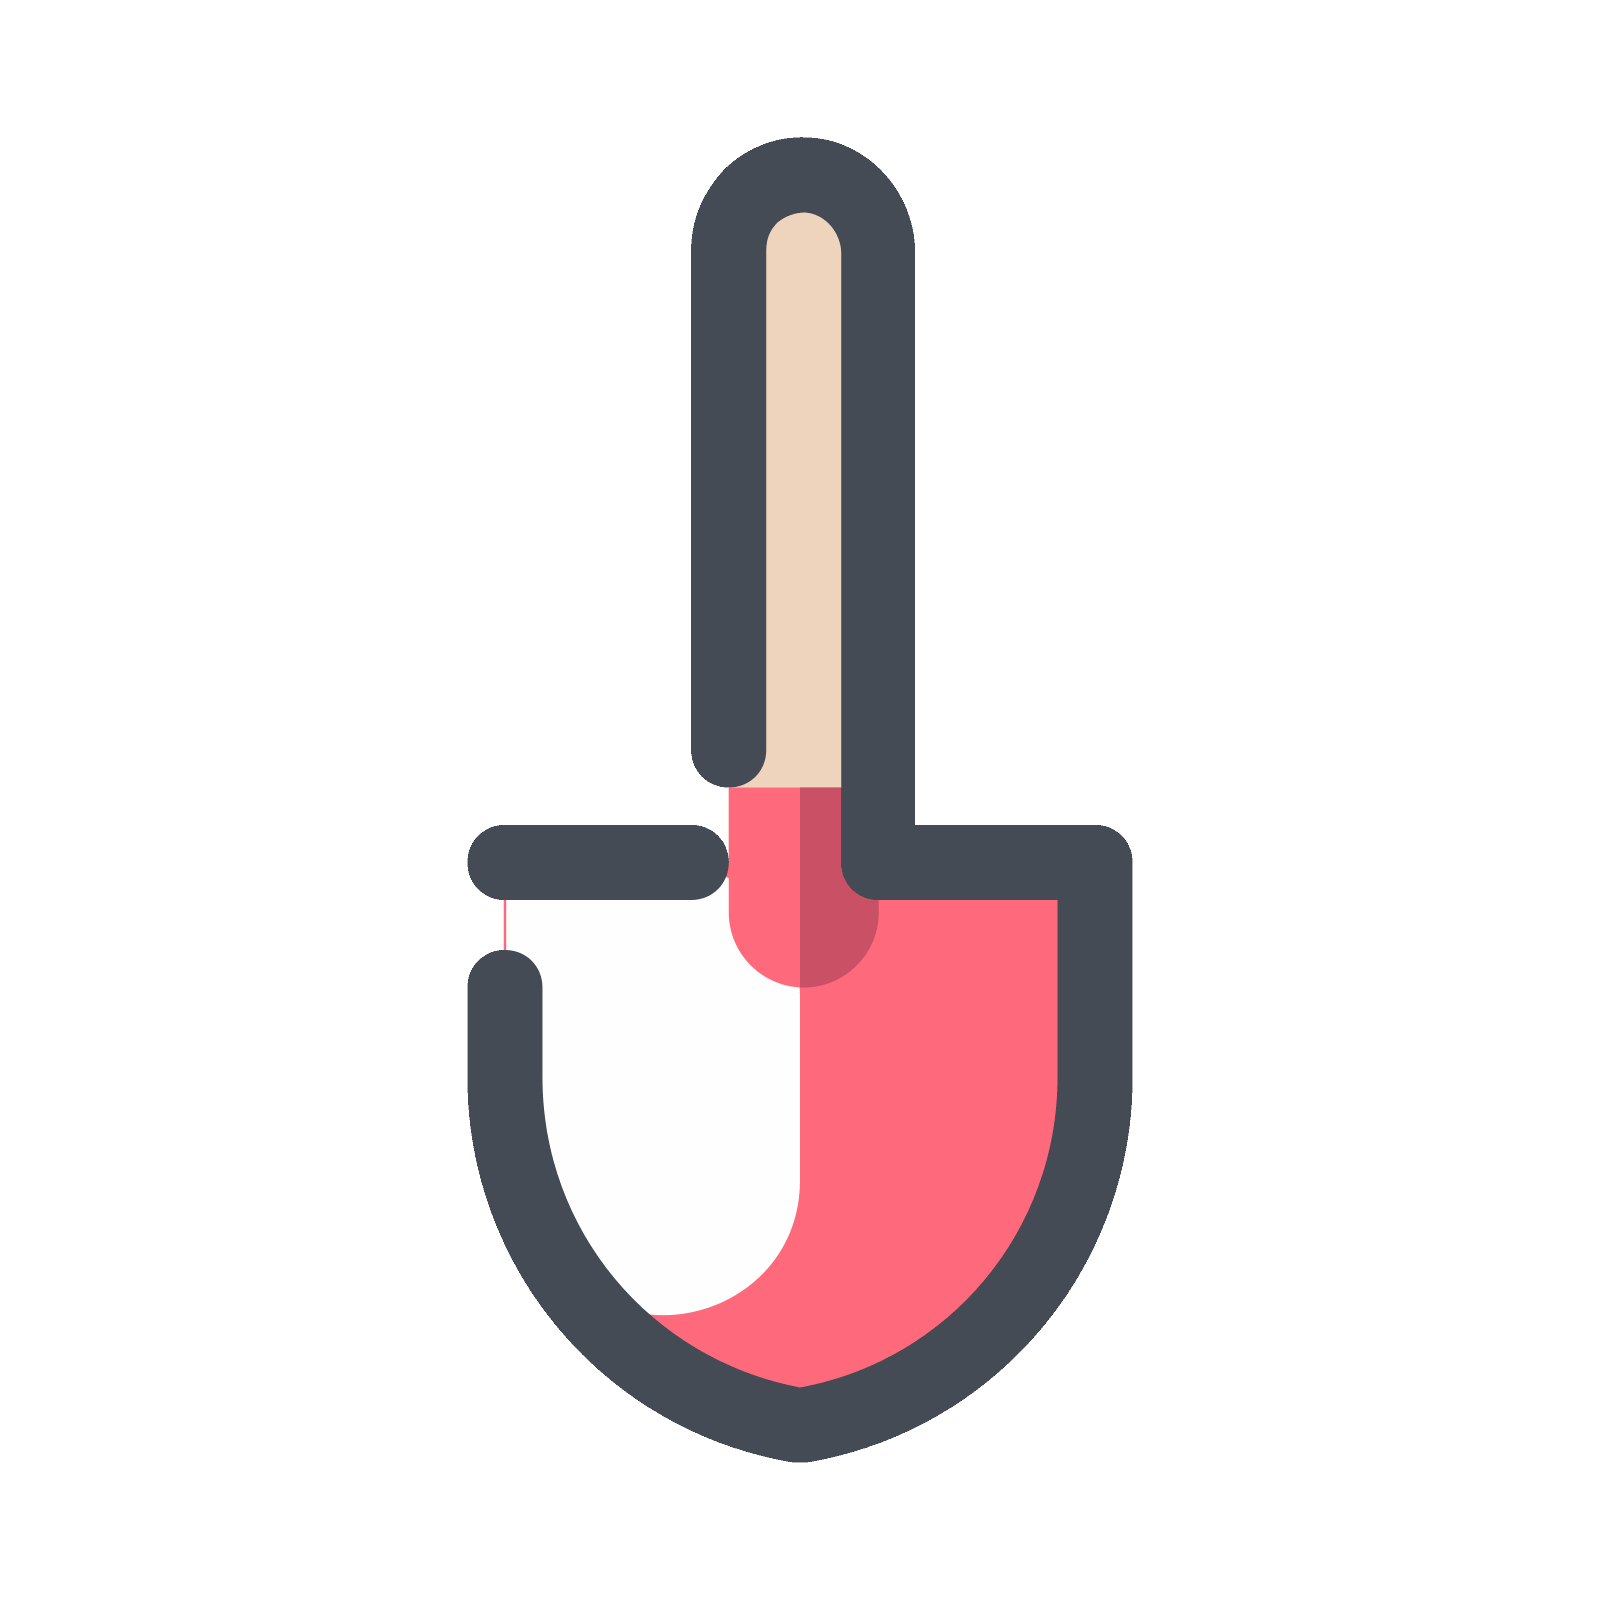 Shovel vector png. Fire icon free download